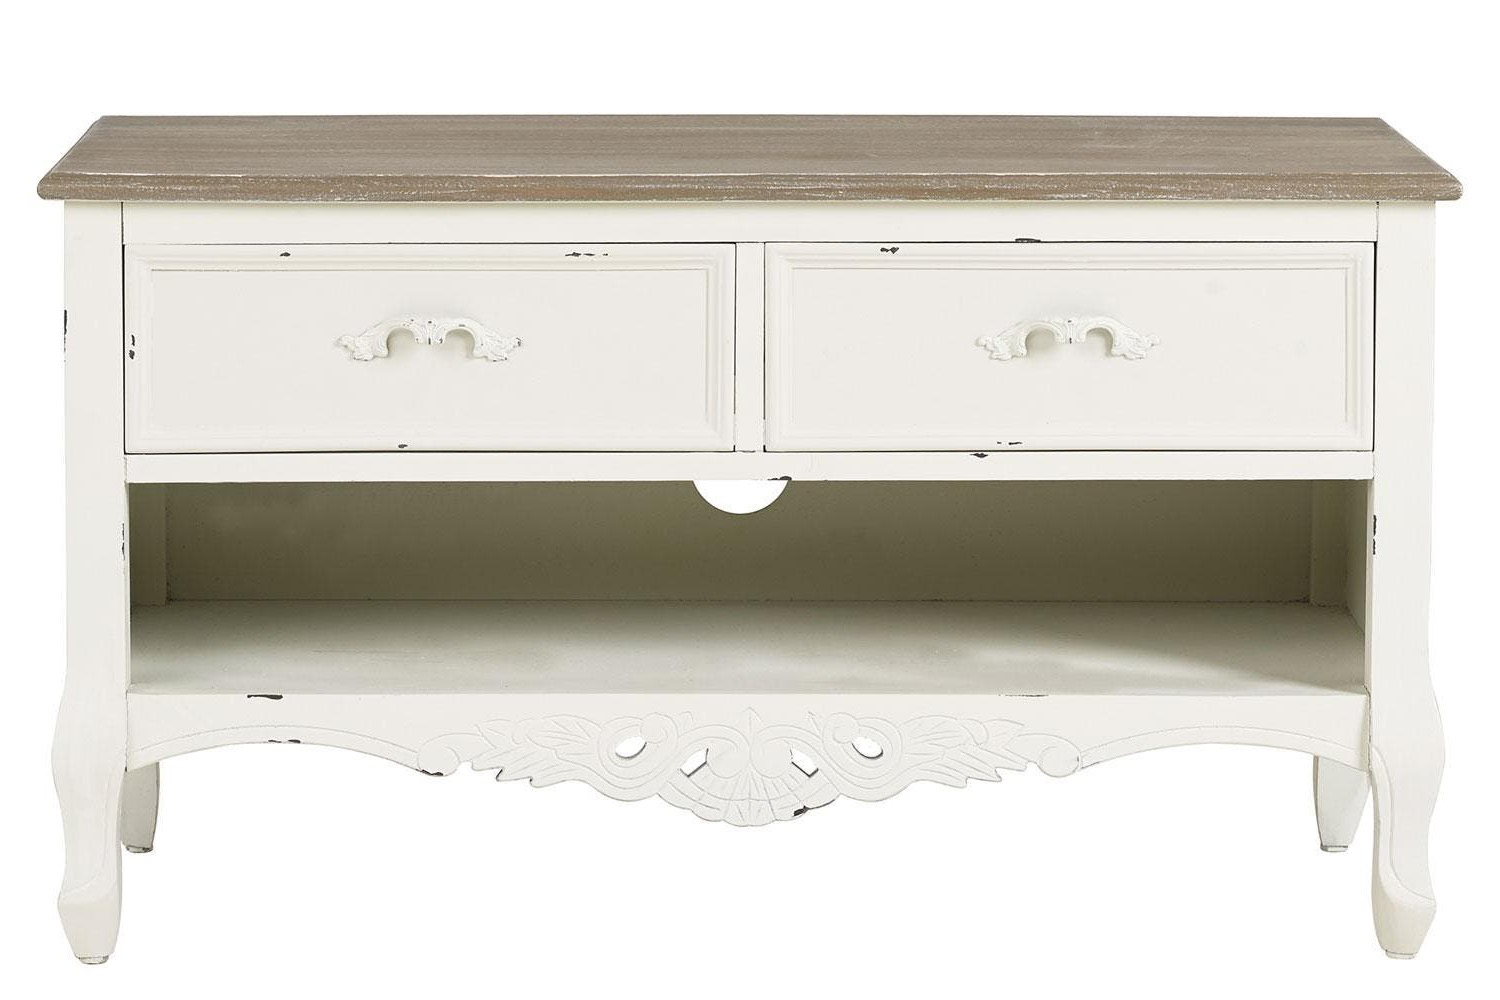 White Hanna Oyster Corner Tv Stands (View 5 of 7)